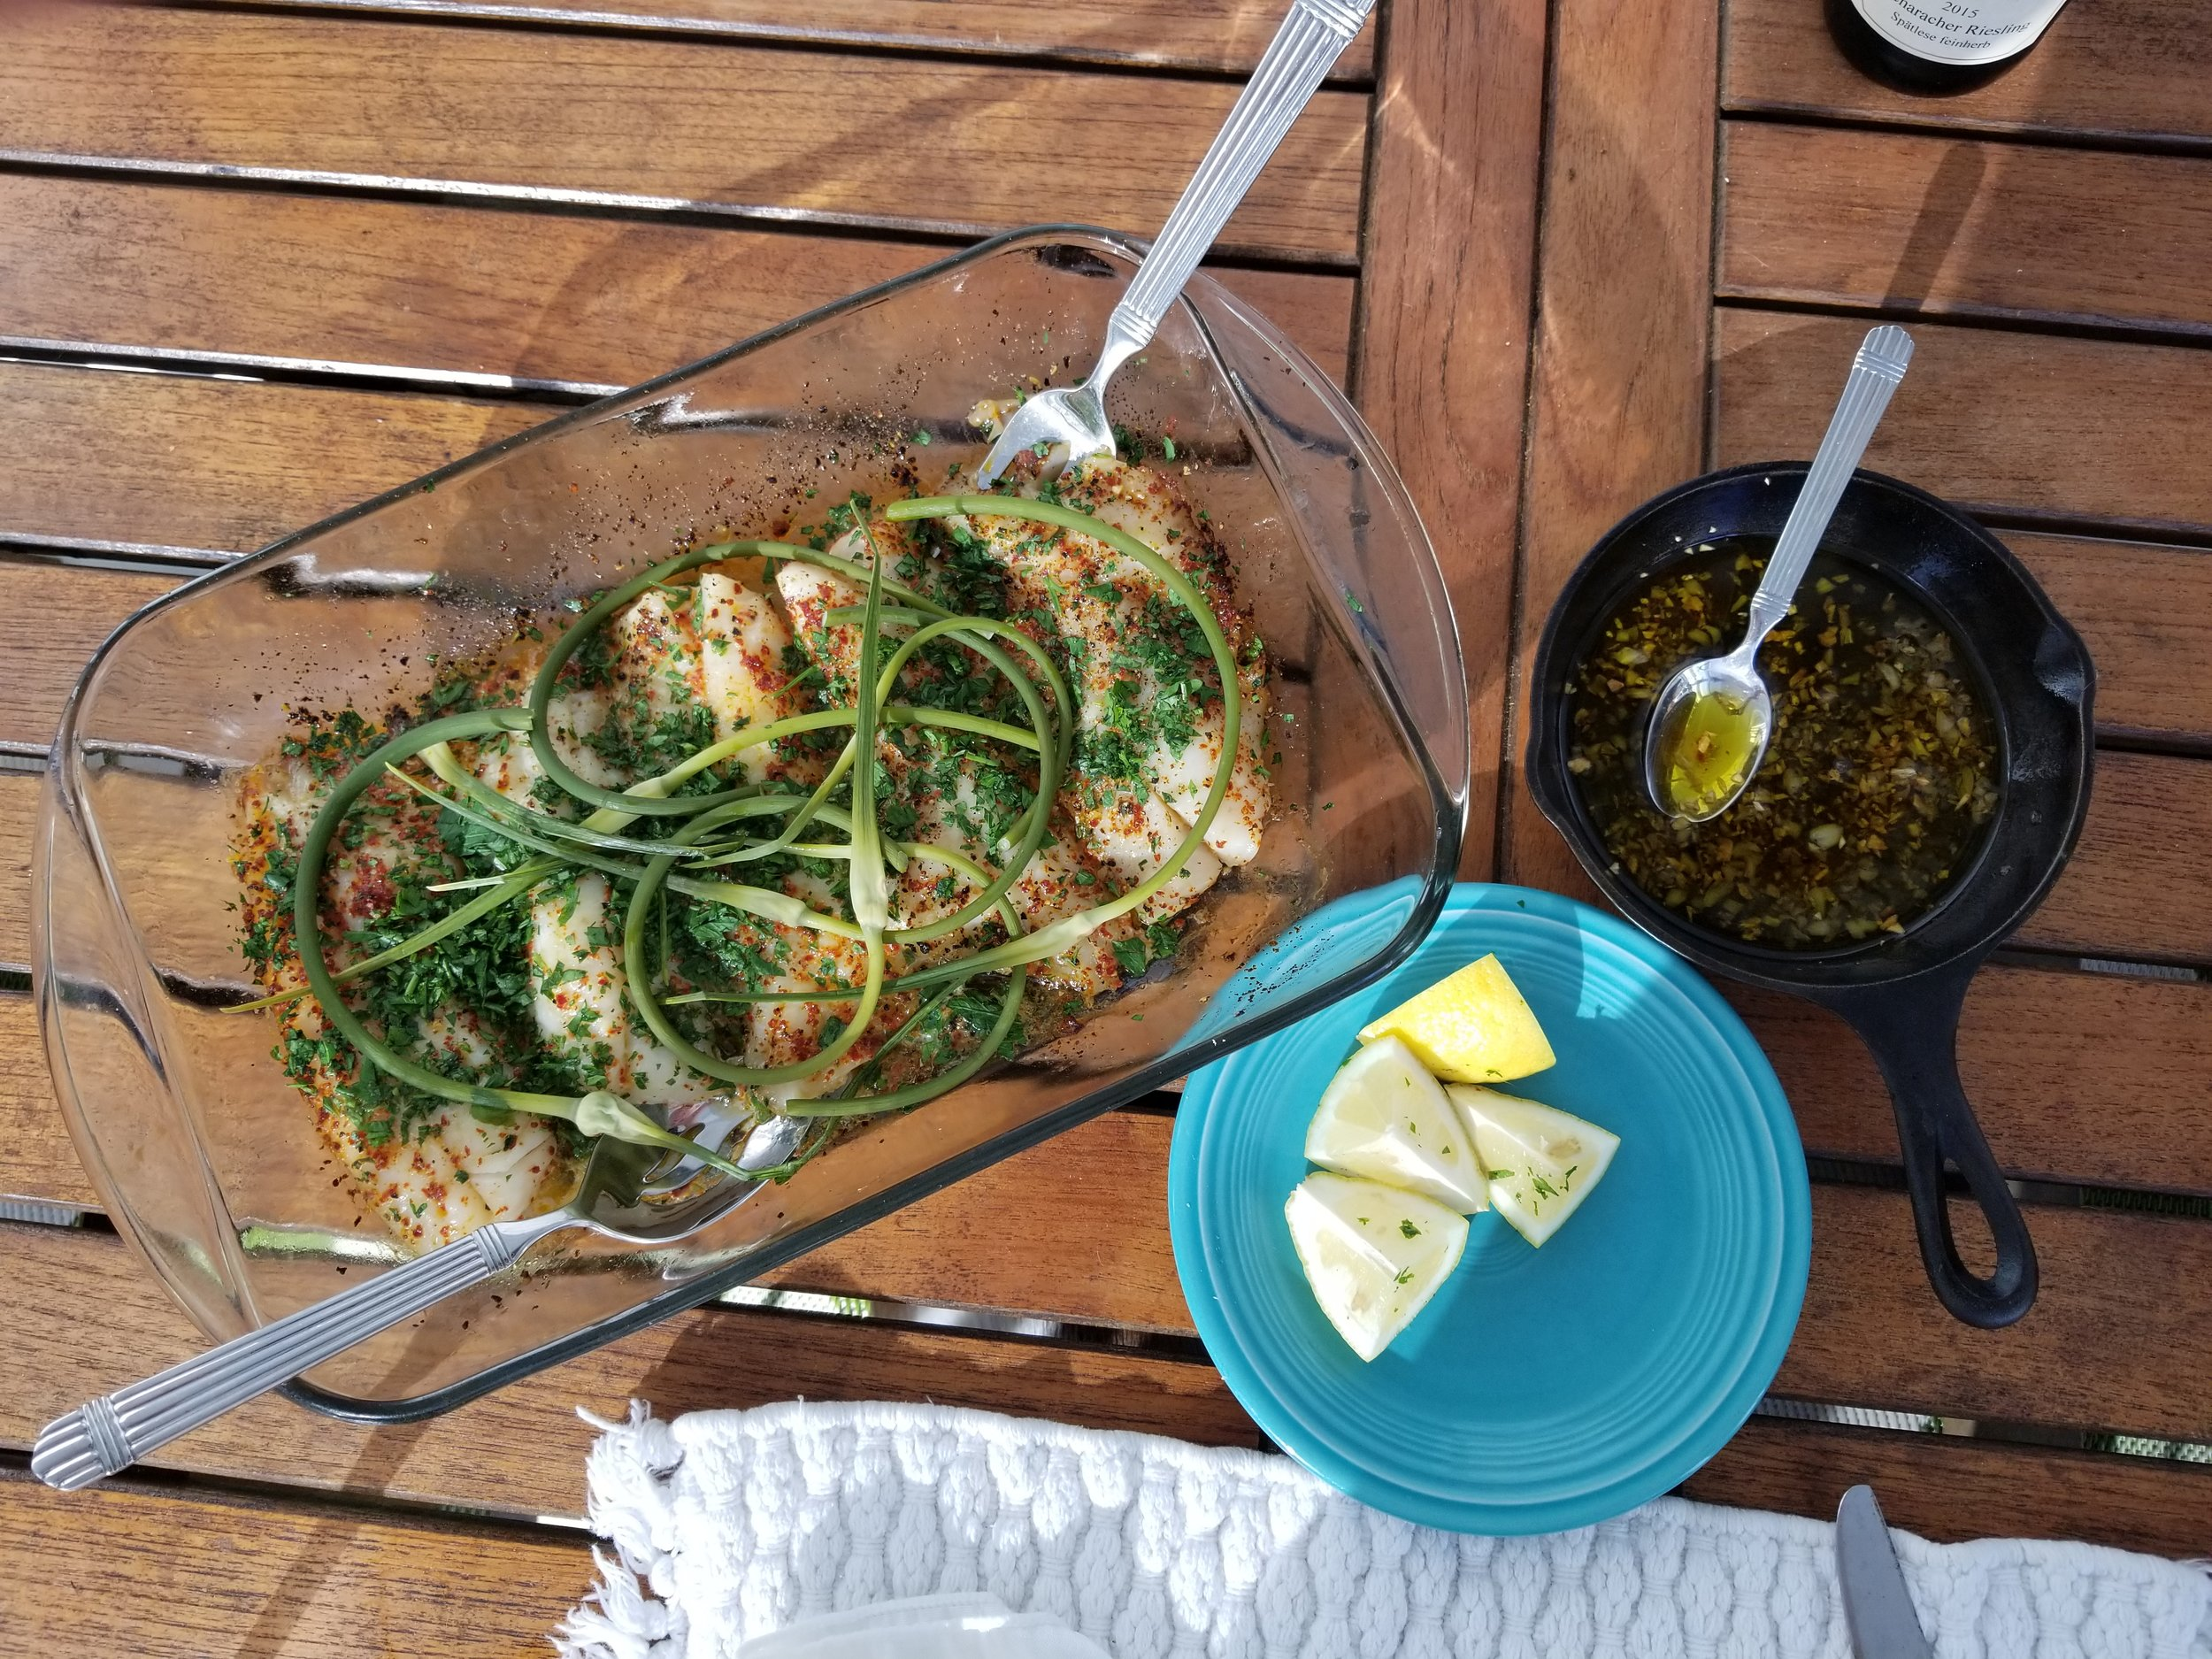 Mahi Mahi with Lemon, Parsley, Garlic scapes and garlic oil